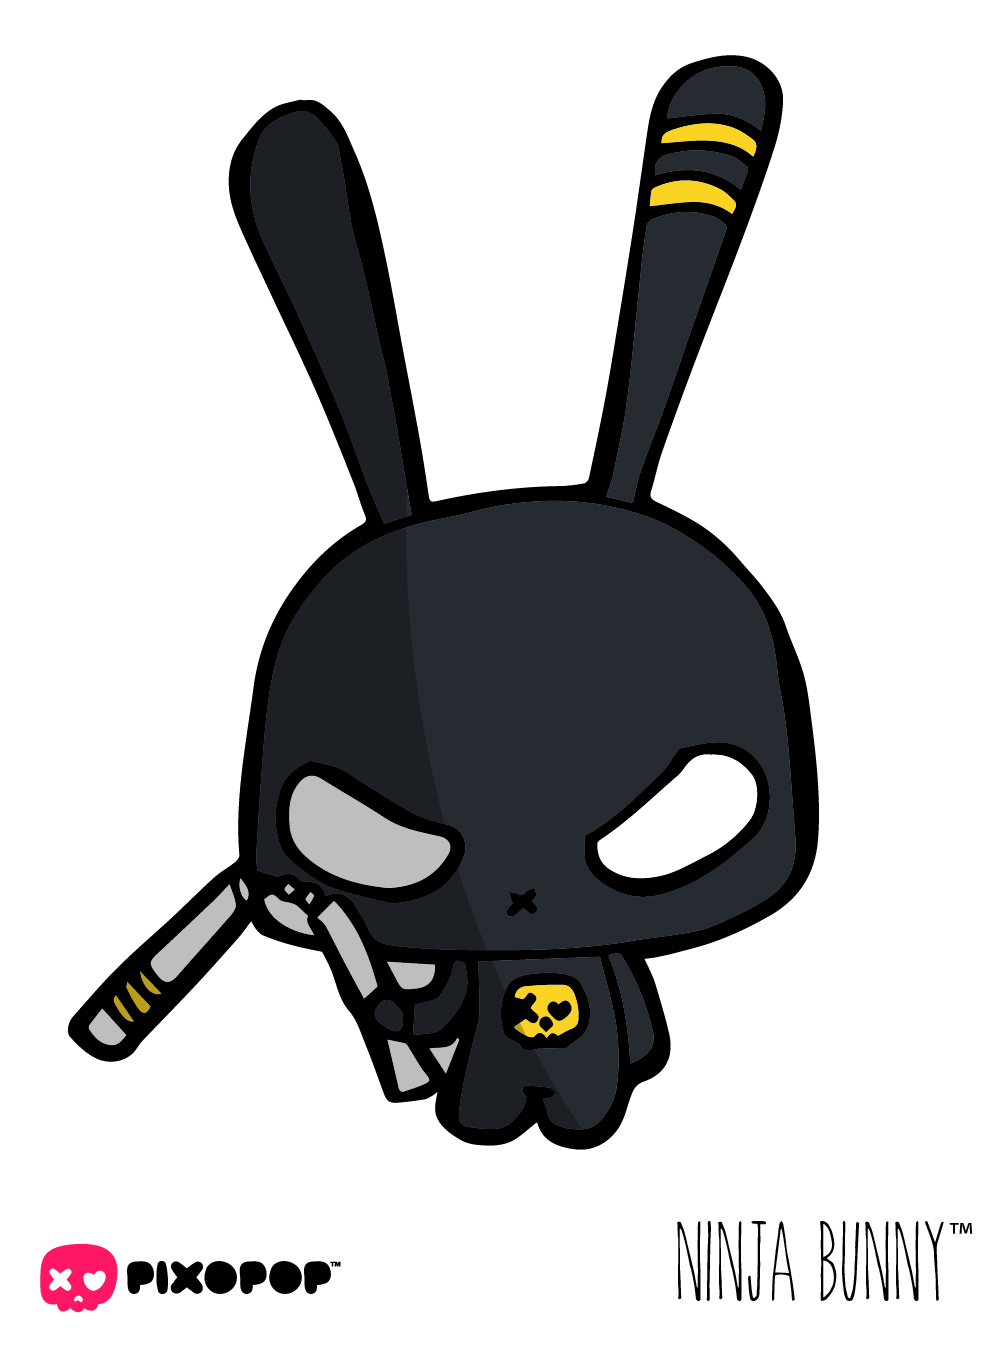 ninjabunny is the dark side of stitch. When things go sour, ninjabunny pops out of nowhere and comes to save the day. He is very agile and can transform the bad guys into frantic little raccoons. Ninjabunny is also very serious. There is not fooling around with him. As soon as the action is over, he's gone; he means business.